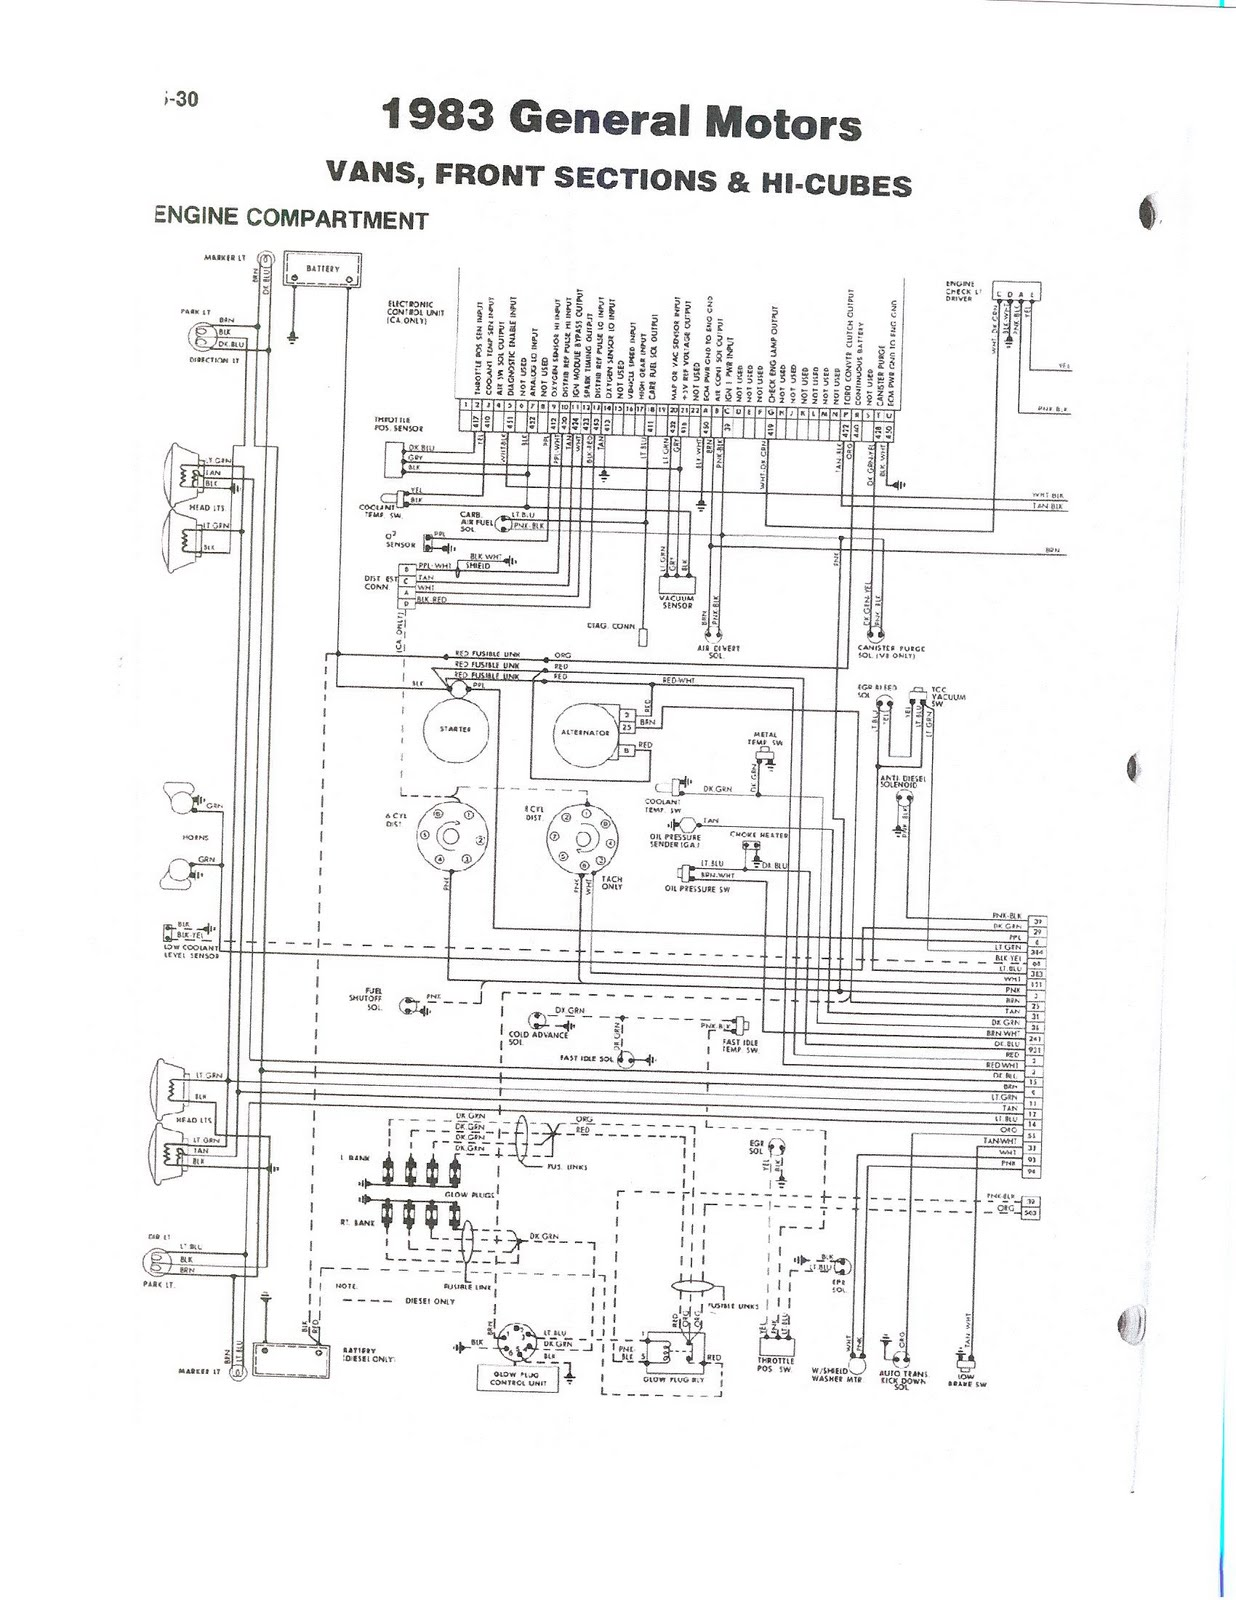 83+GM+Van+front+section+%26+Hi Cubes+engine+compartment 1985 pace arrow wiring diagram 1985 wiring diagrams collection  at soozxer.org